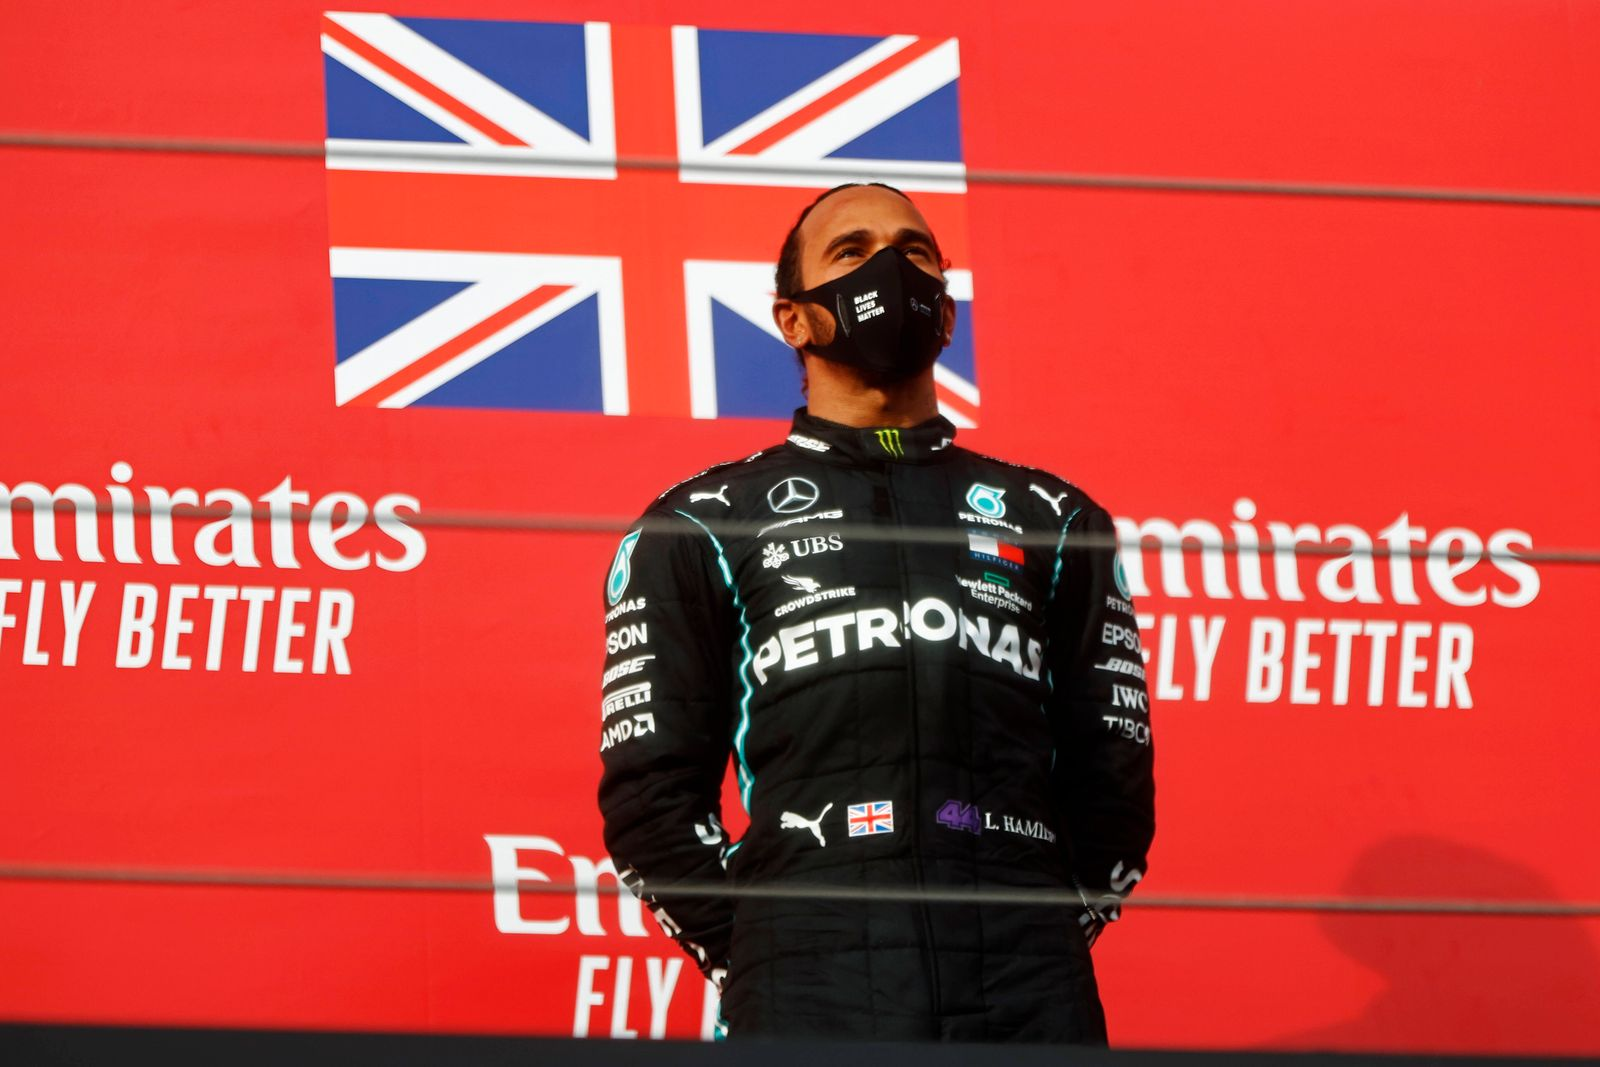 2020 Emilia-Romagna GP IMOLA, ITALY - NOVEMBER 01: Lewis Hamilton, Mercedes-AMG Petronas F1, 1st position, on the podium